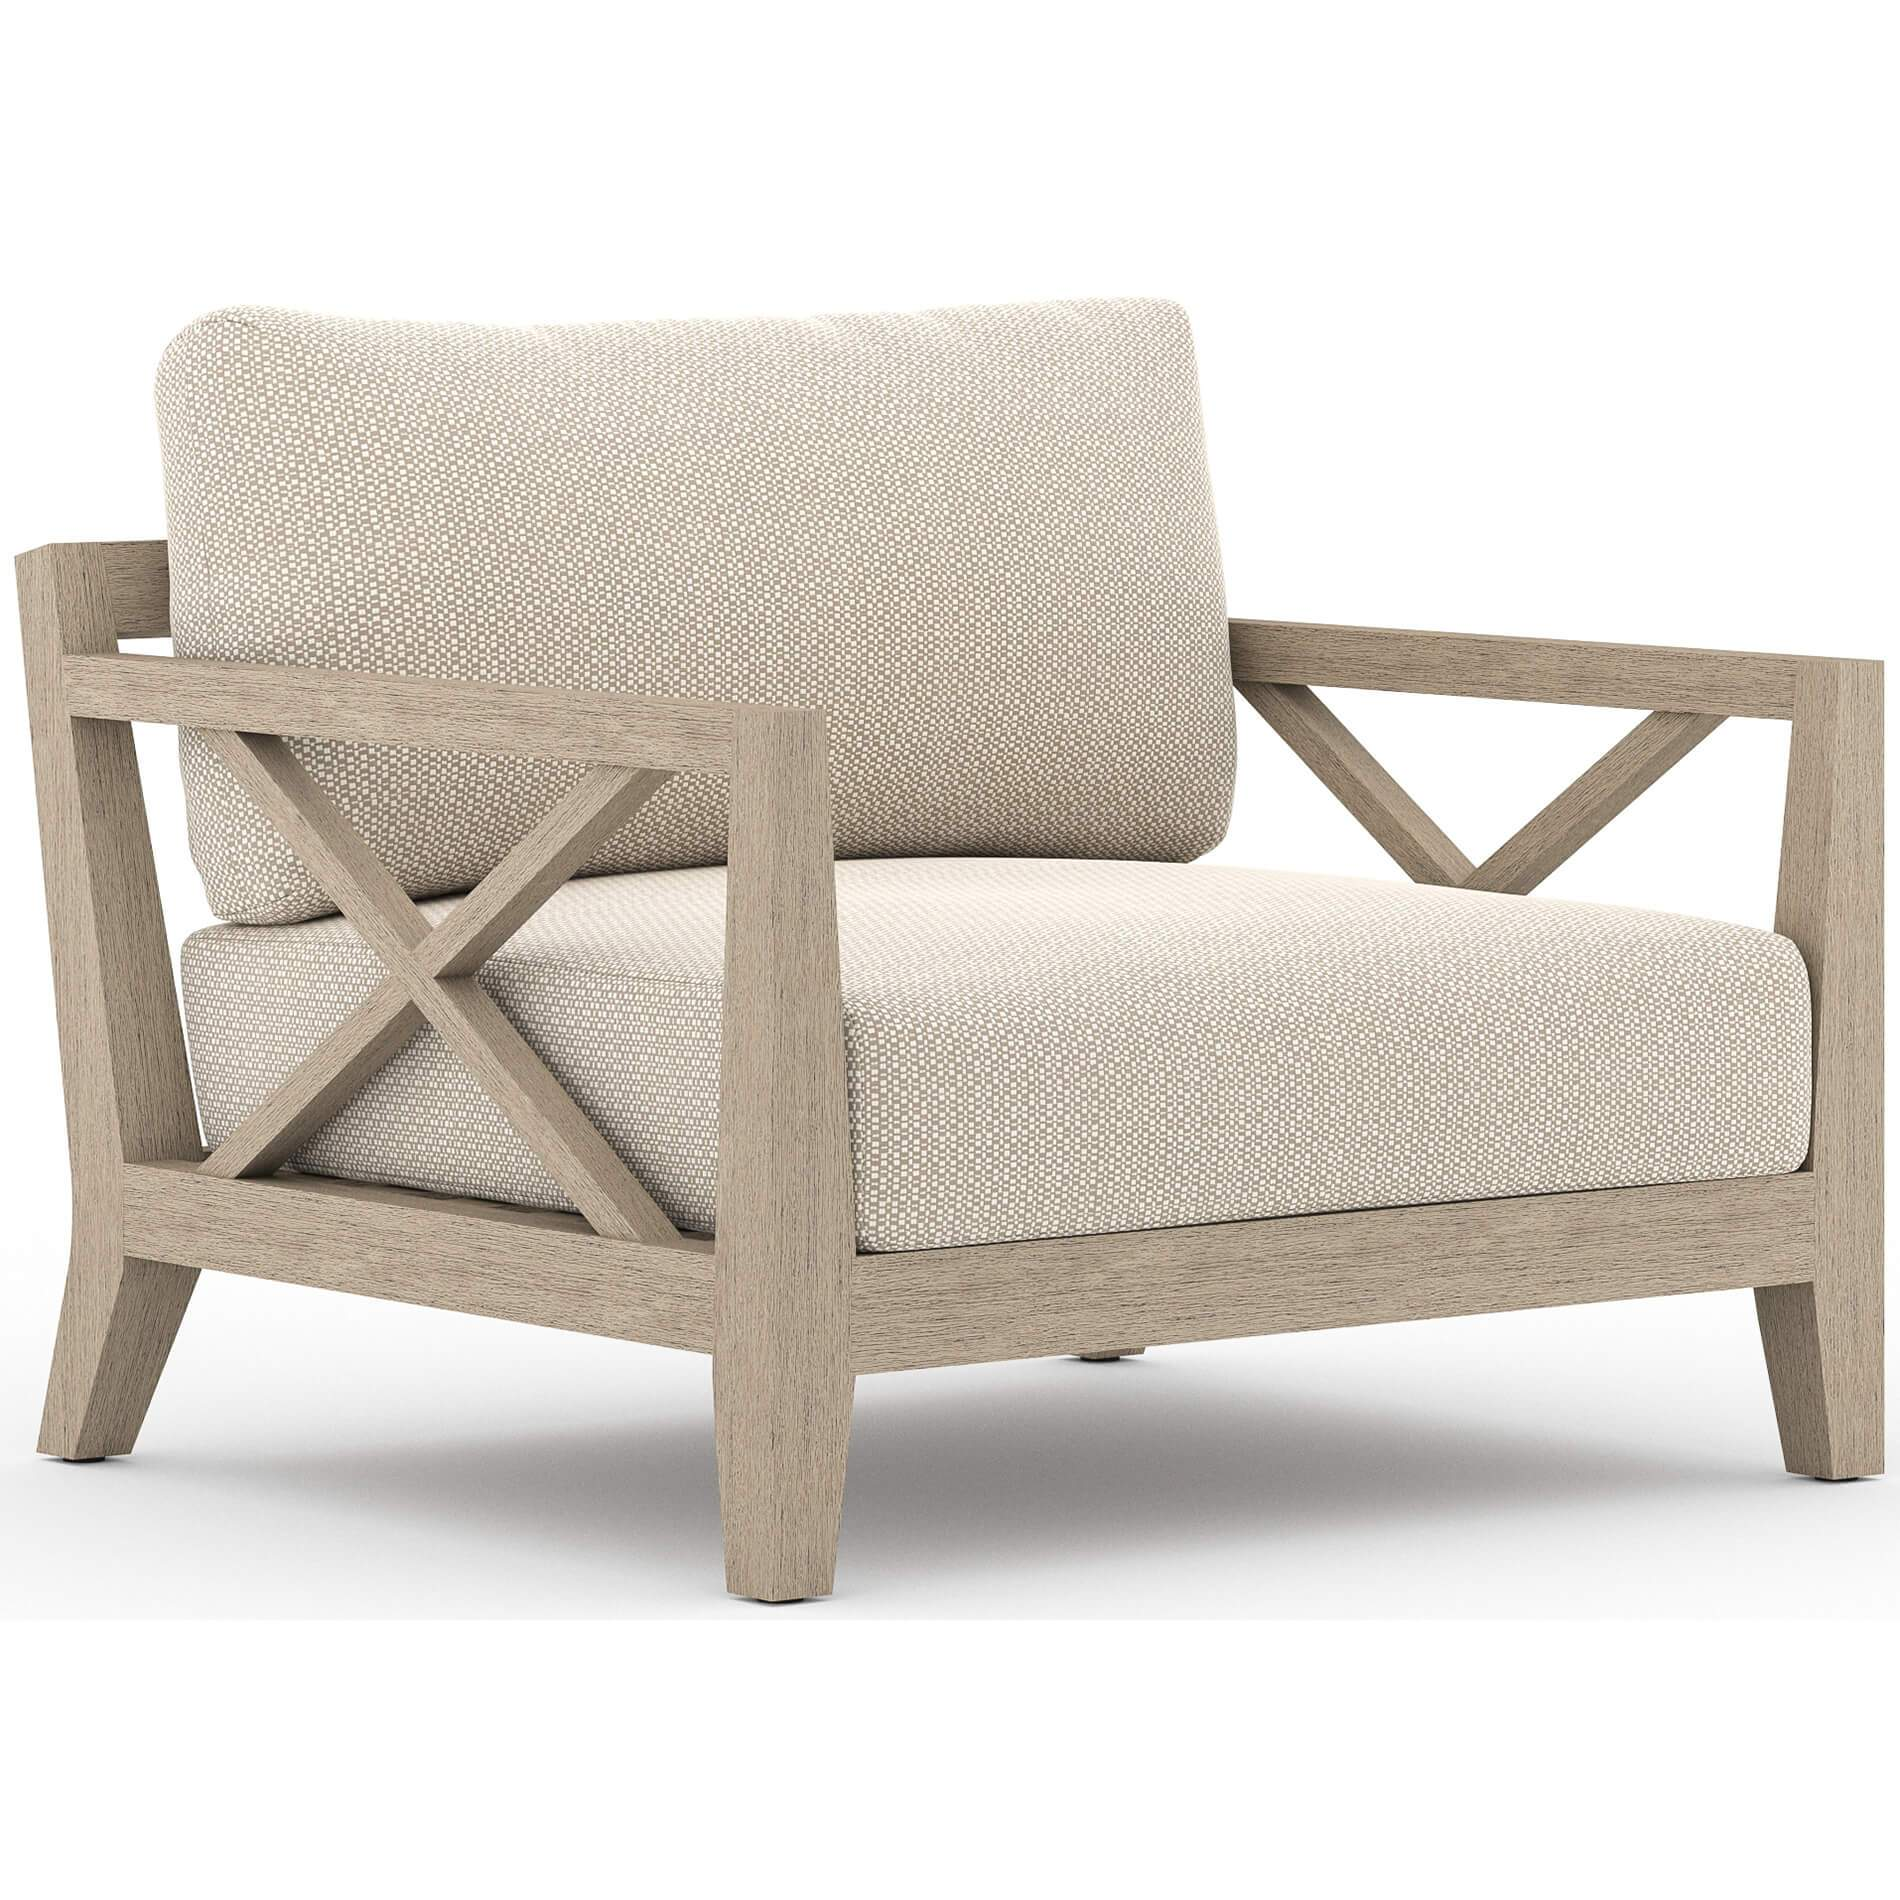 Cool Huntington Outdoor Chair Faye Sand Washed Brown Frame Machost Co Dining Chair Design Ideas Machostcouk